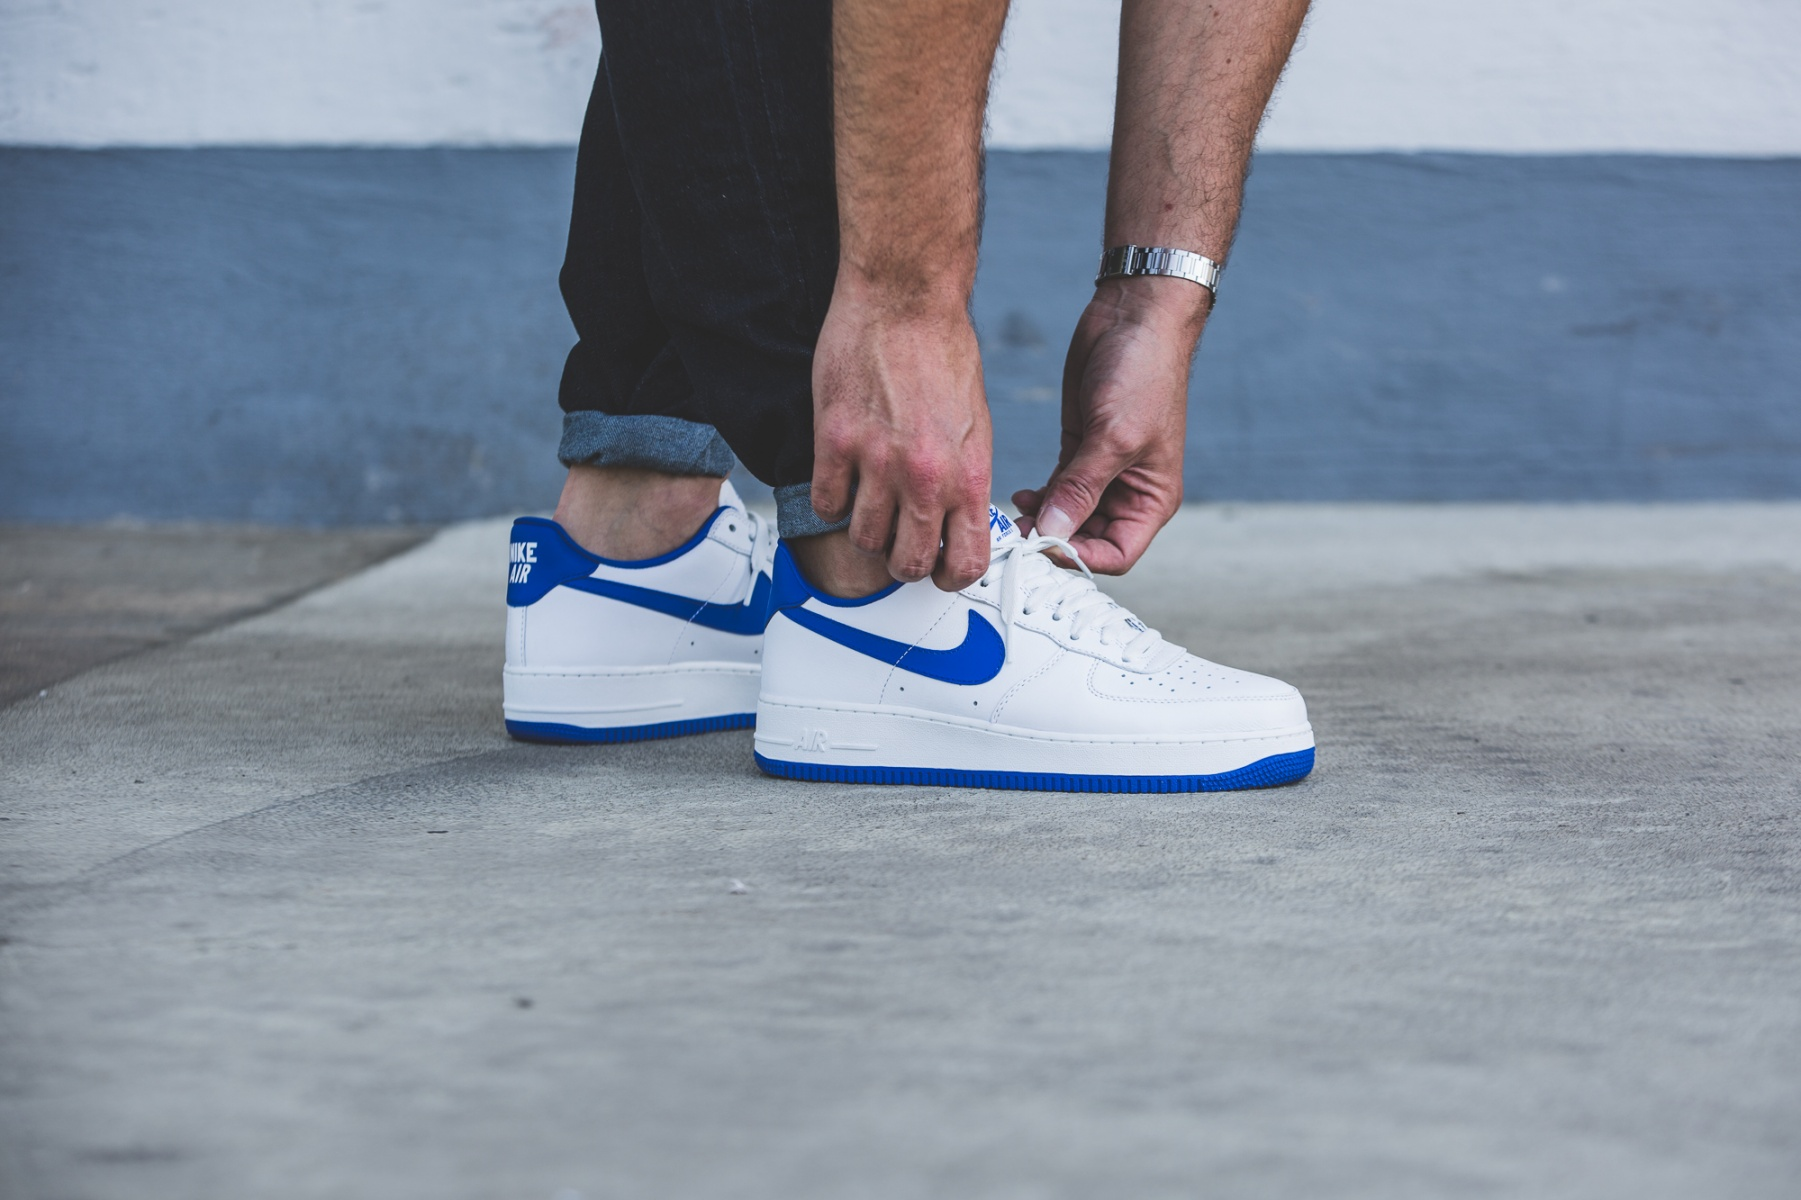 Nike Air Force 1 Low Retro (weiß / blau) - 845053-102 | 43einhalb sneaker  store